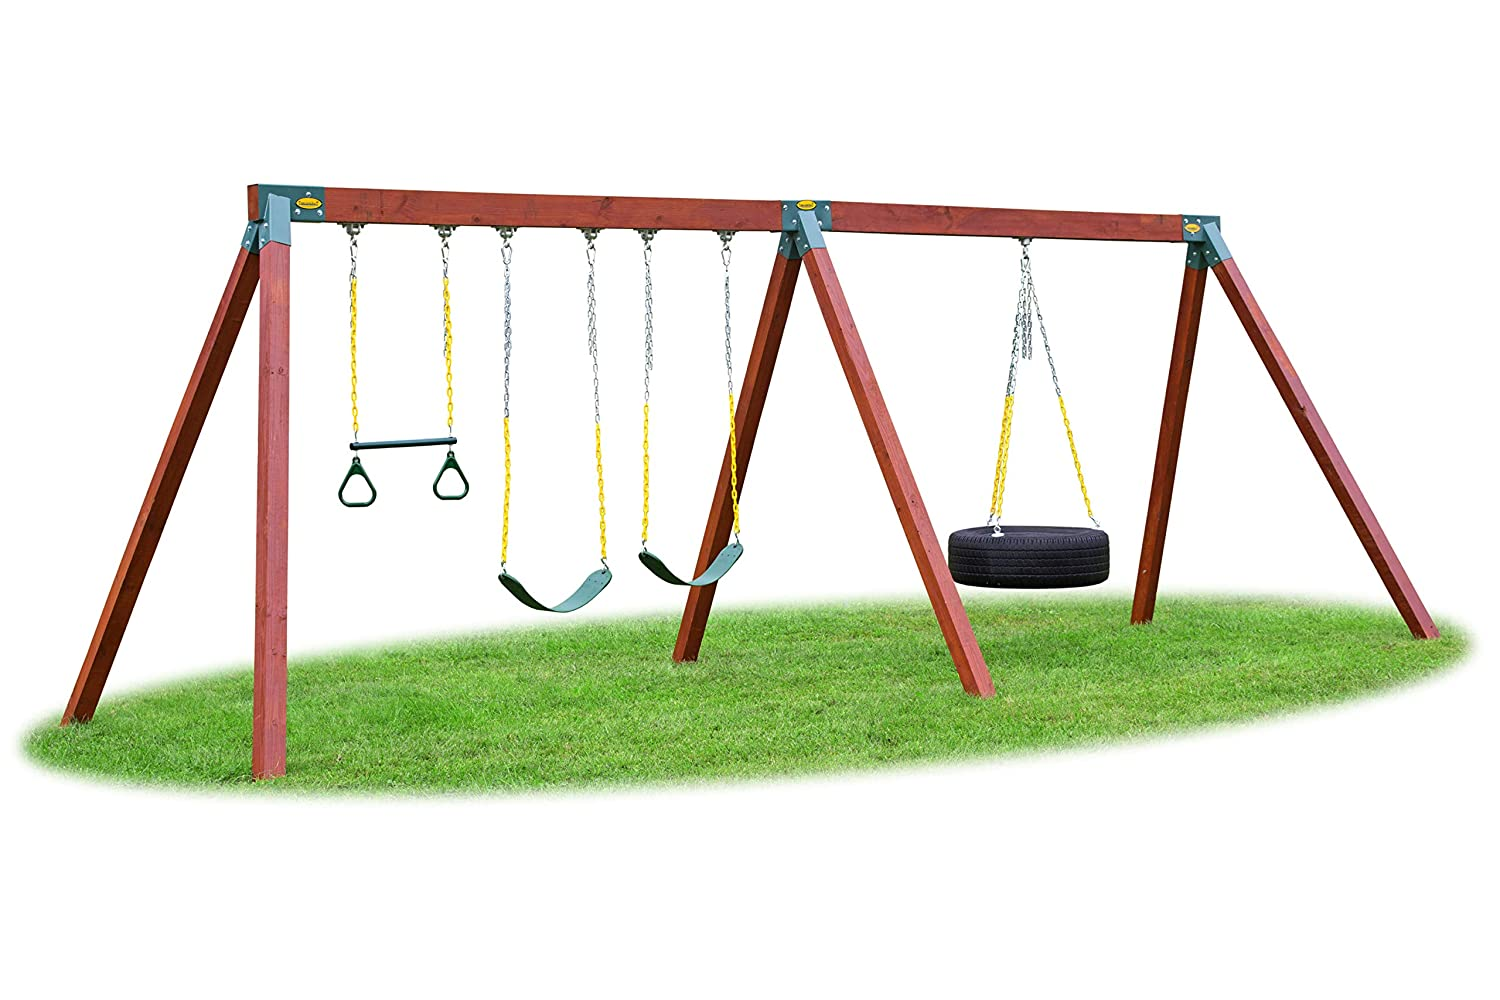 Eastern Jungle Gym Easy 1-2-3 90° A-Frame Swing Set Bracket Heavy Duty